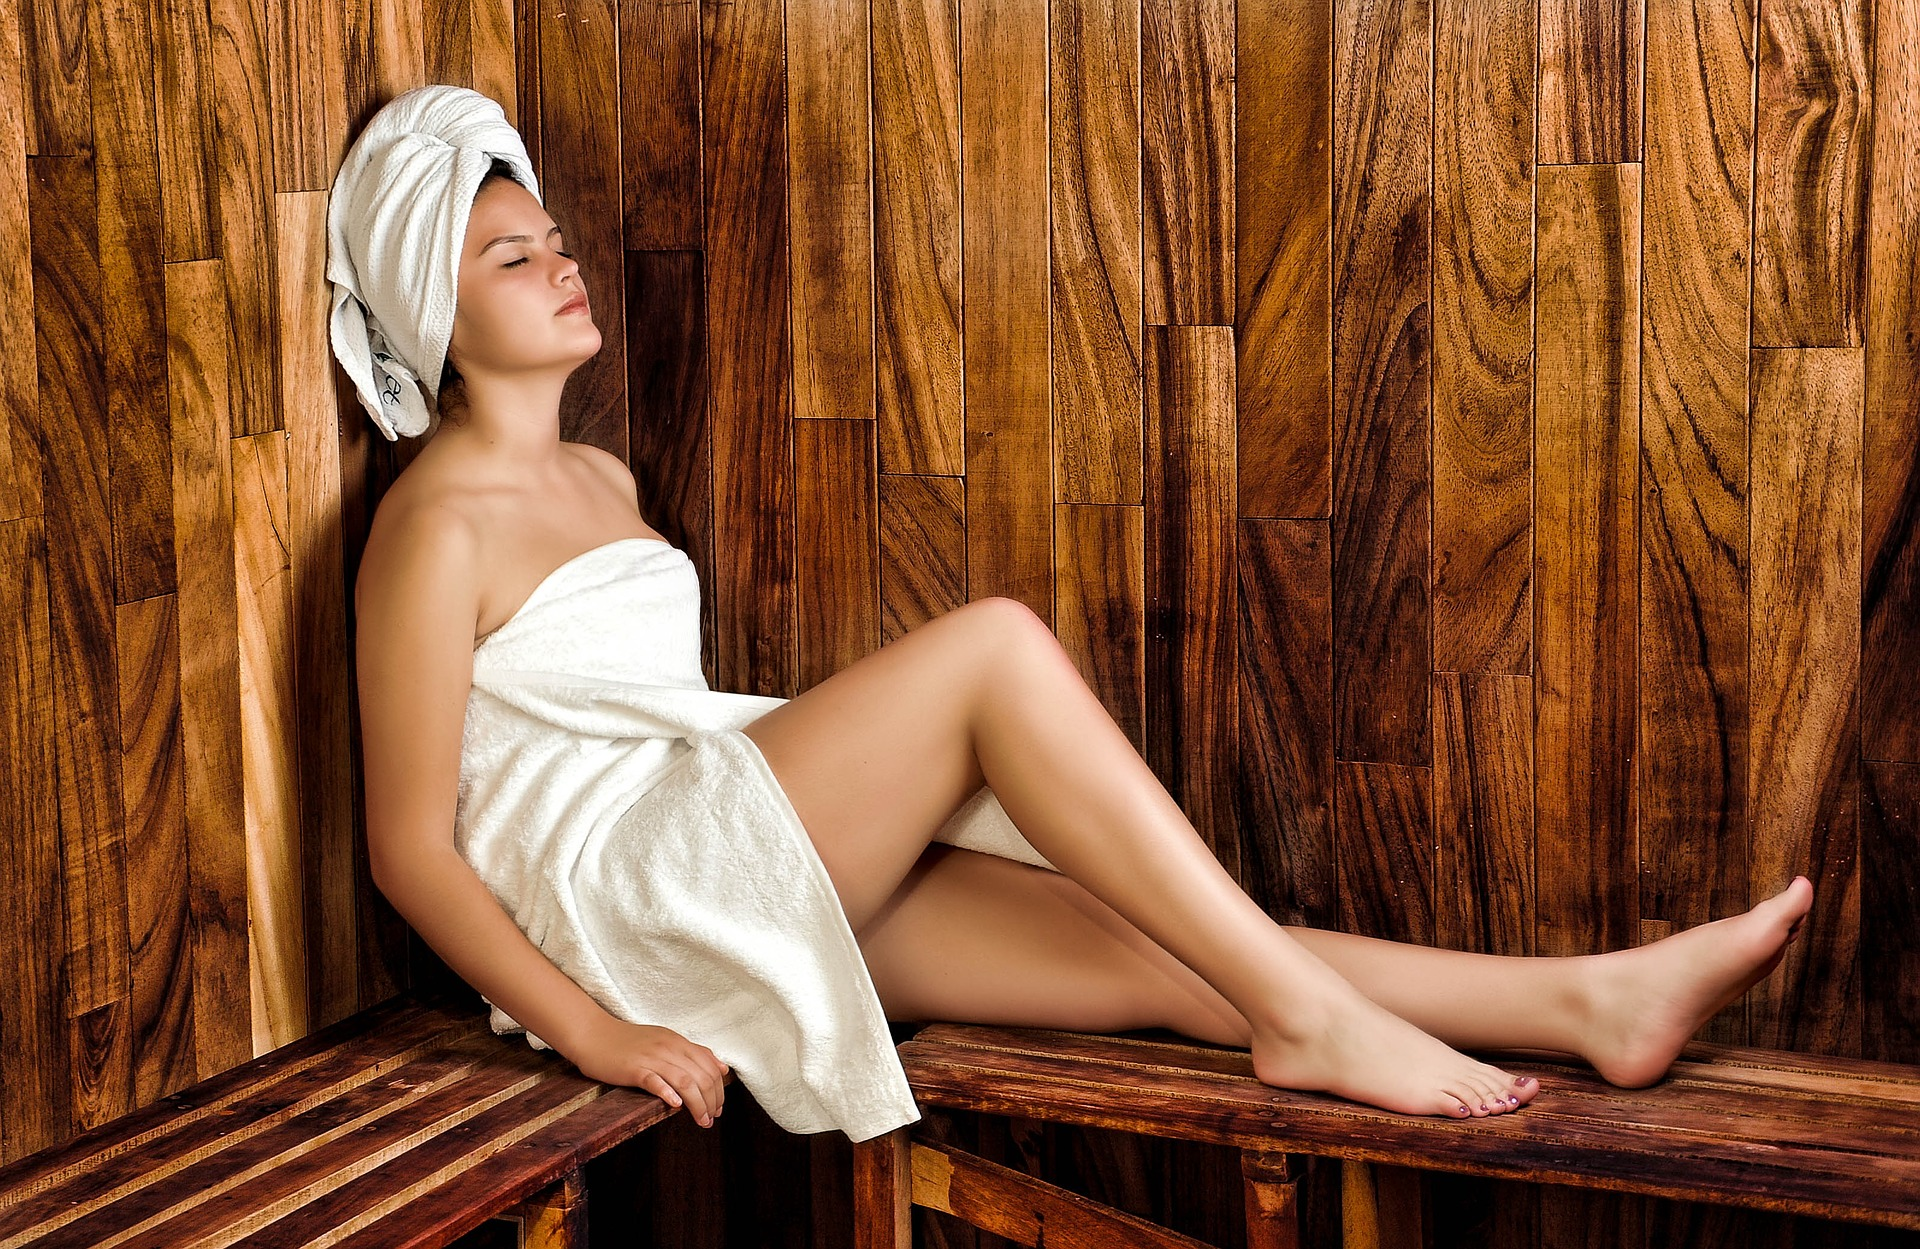 Sauna, benefici e come farla